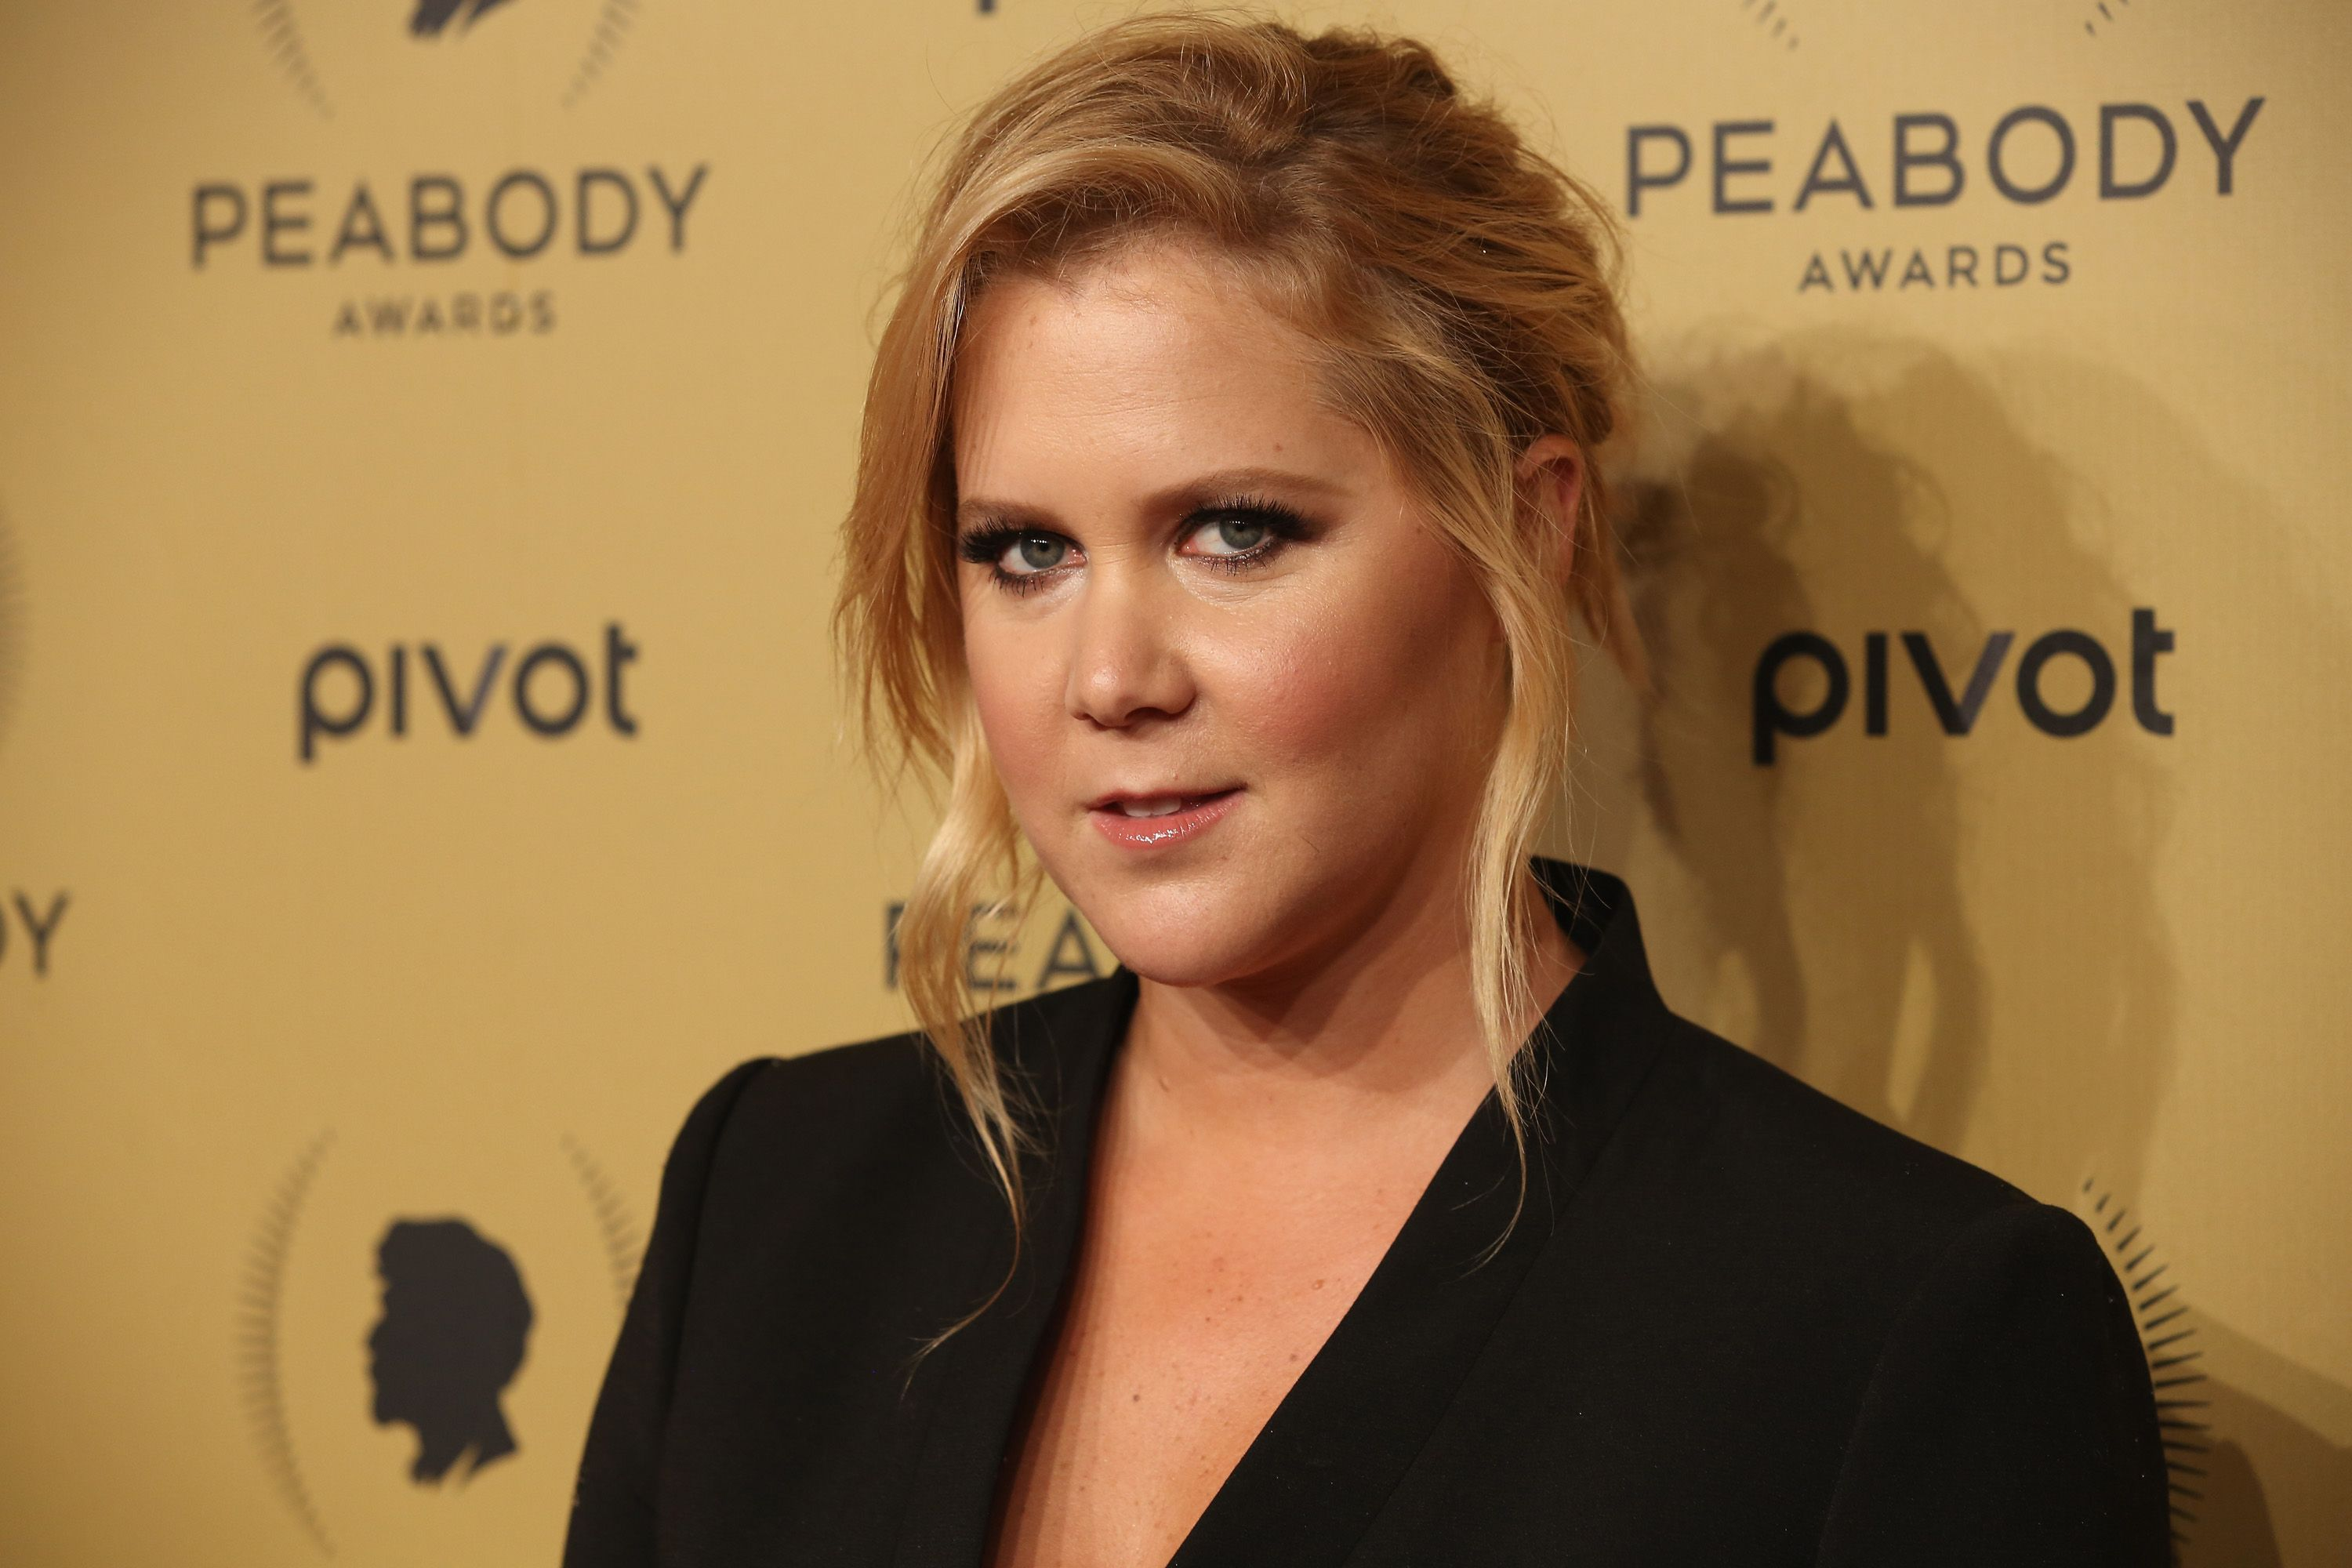 Amy Schumer at the 74th Annual Peabody Awards Ceremony at Cipriani Wall Street on May 31, 2015, in New York City. | Source: Getty Images